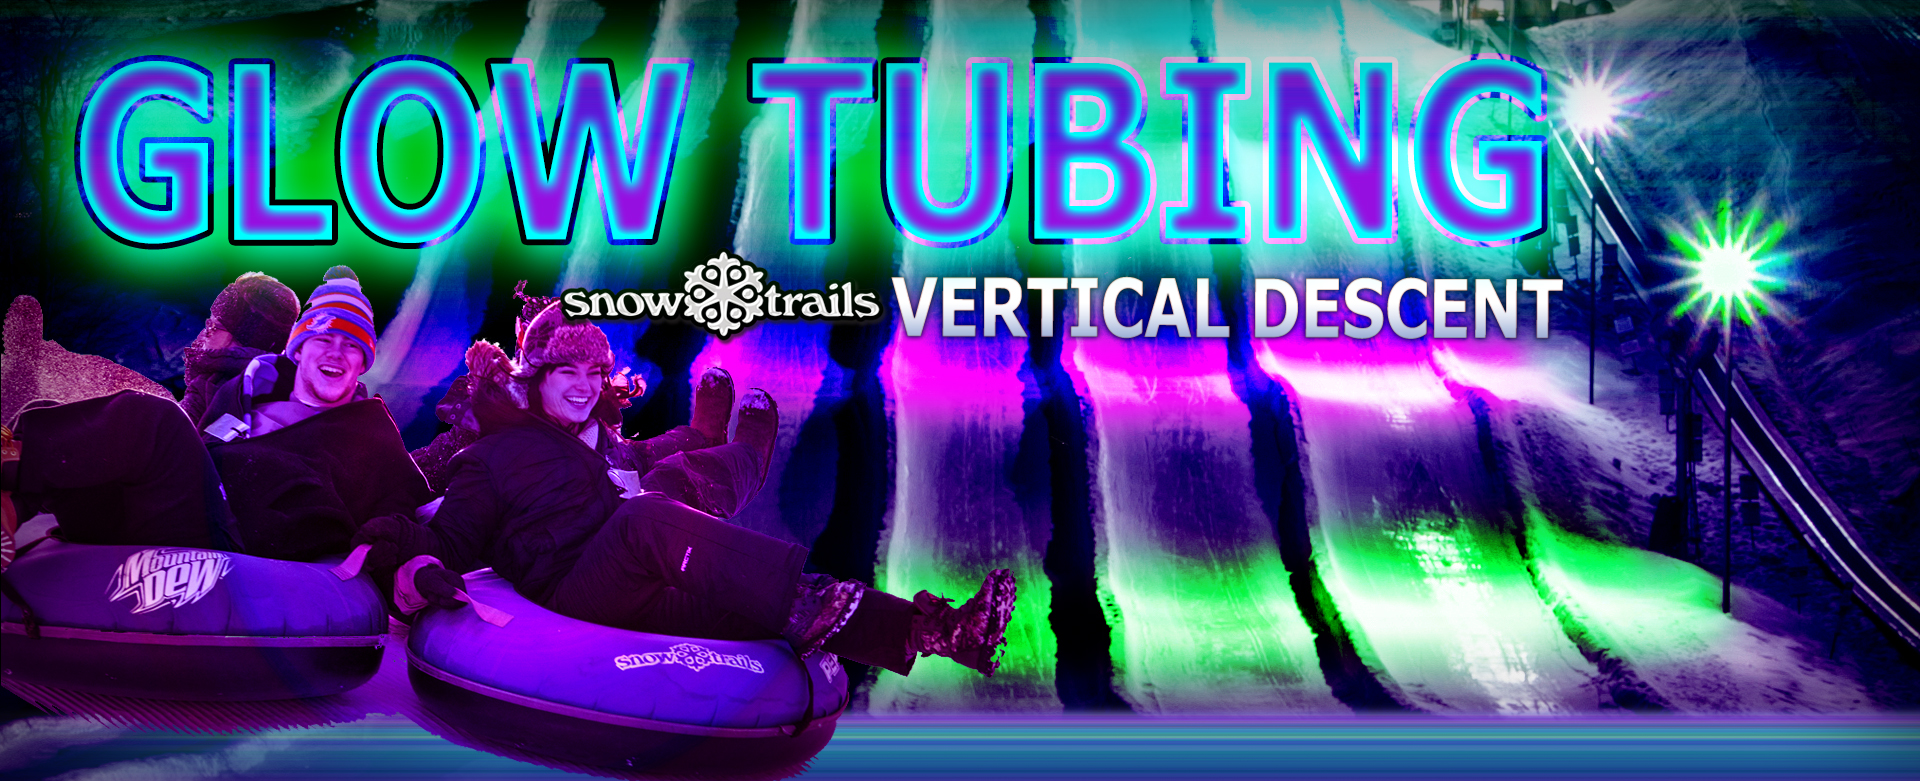 Glow Tubing at Vertical Descent Tubing Park at Snow Trails